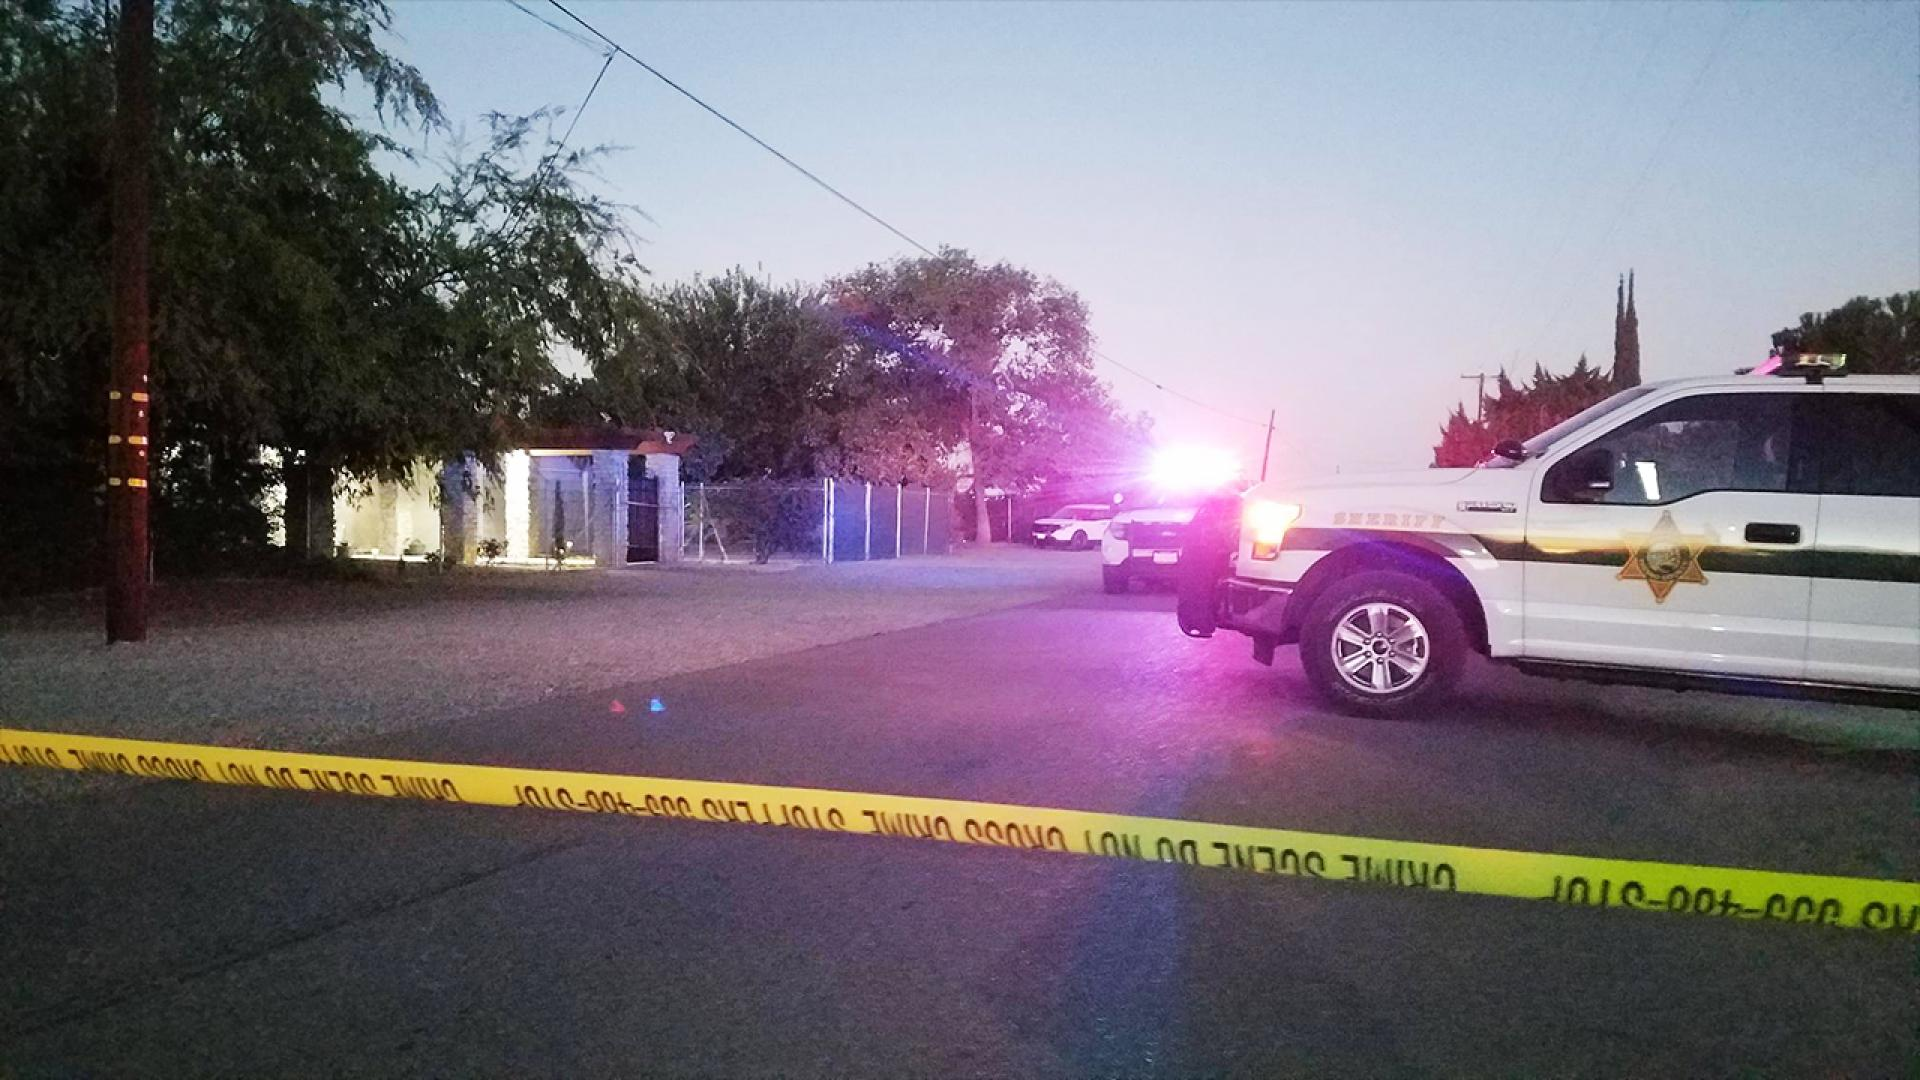 Authorities found a 54-year-old dad shot dead by his teenage son.